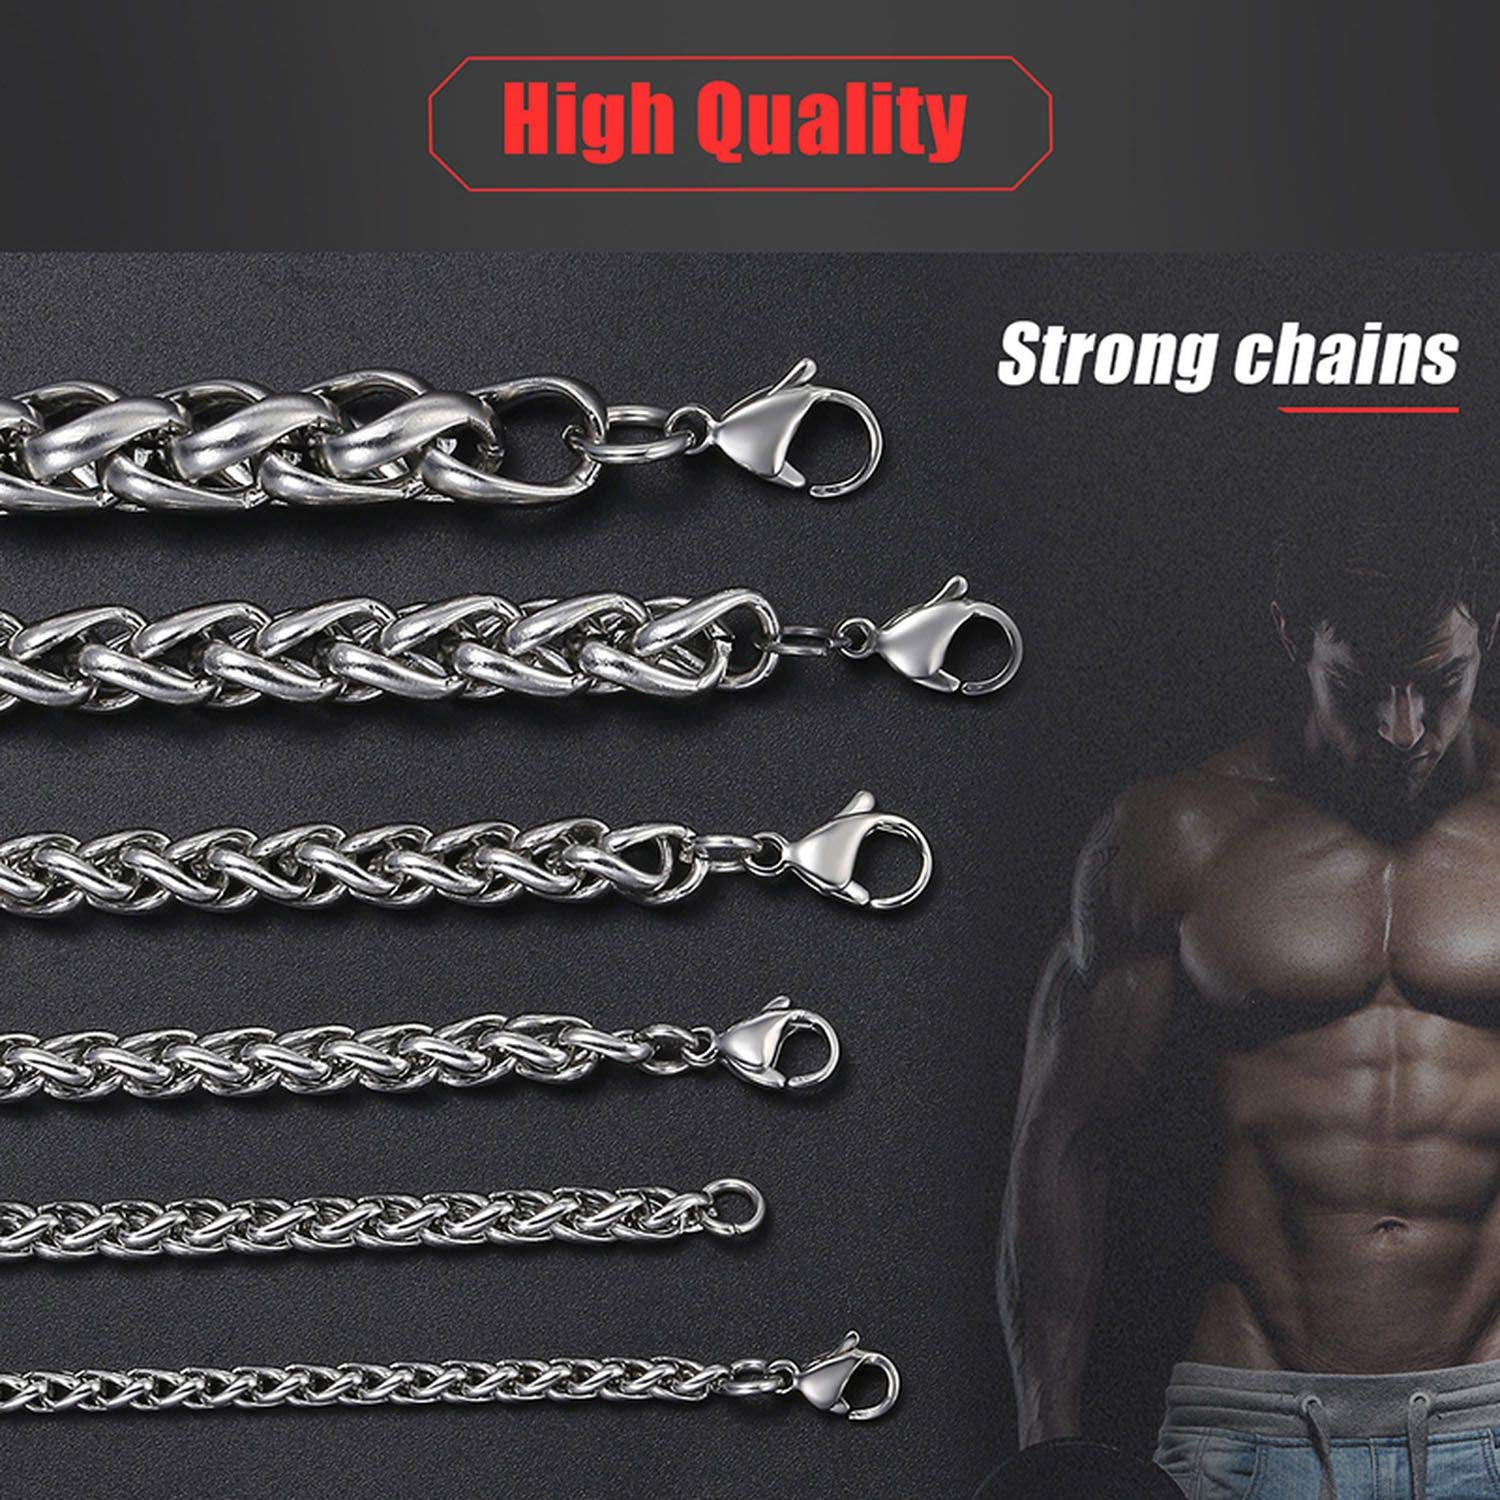 Personalized 3-10mm Mens Stainless Steel Necklace Round Wheat Link Chain Hip Hop Necklace Jewelry for Men,Width 3mm,Gold Color 32inch 80cm